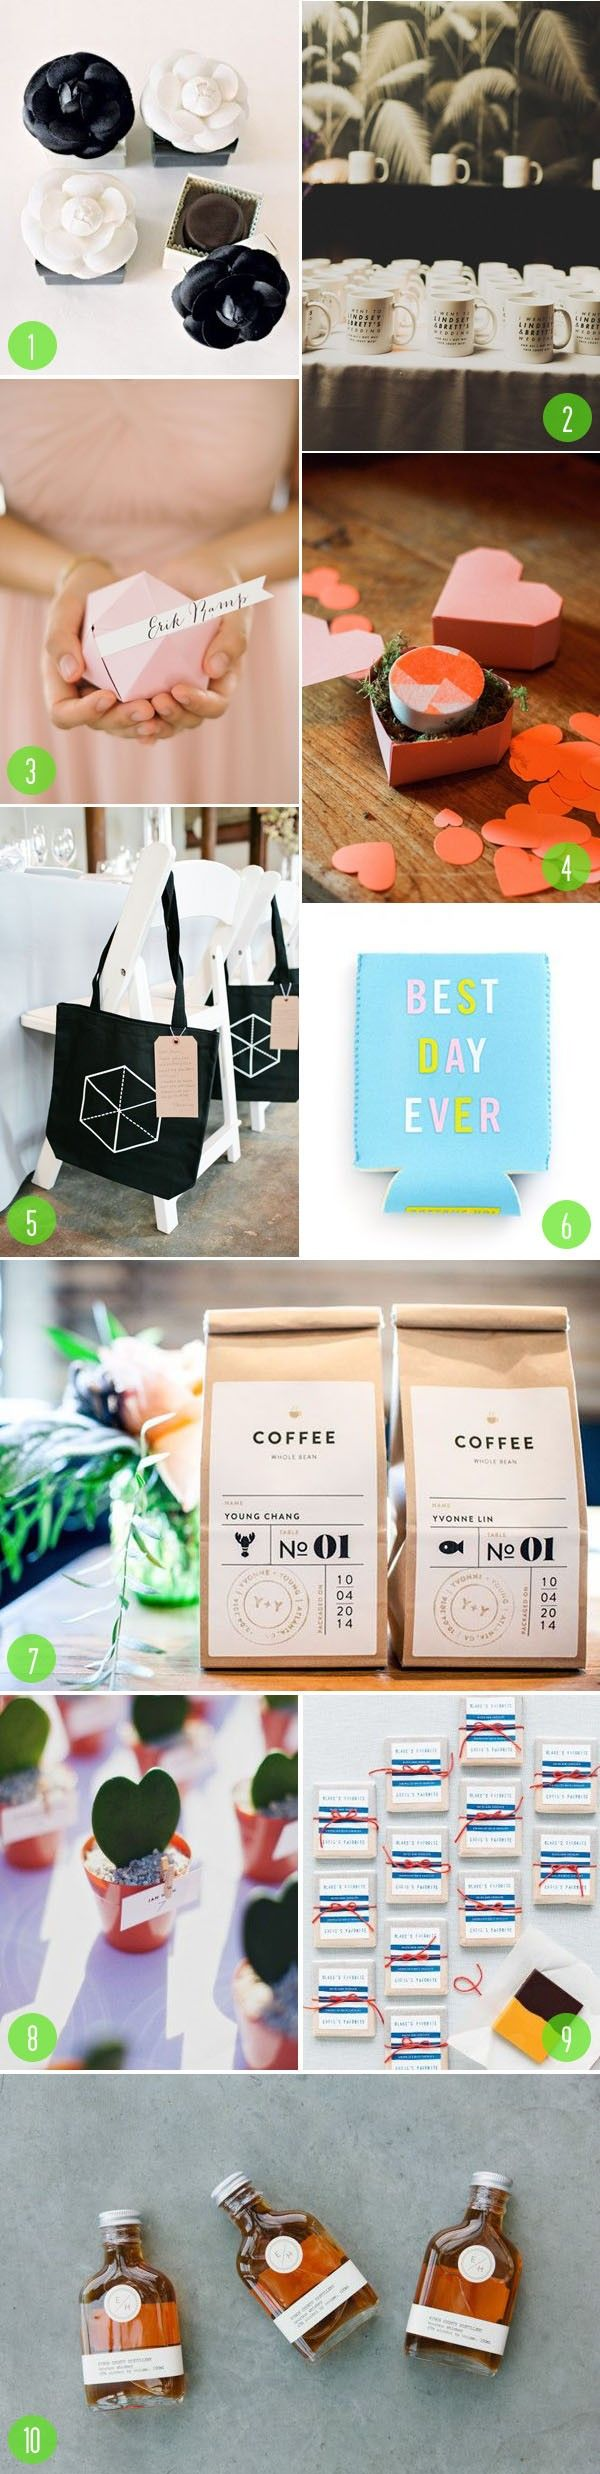 Coffee mug wedding favors - Top 10 Wedding Favors That Are Practical And The Best Gifts A Couple Can Give To